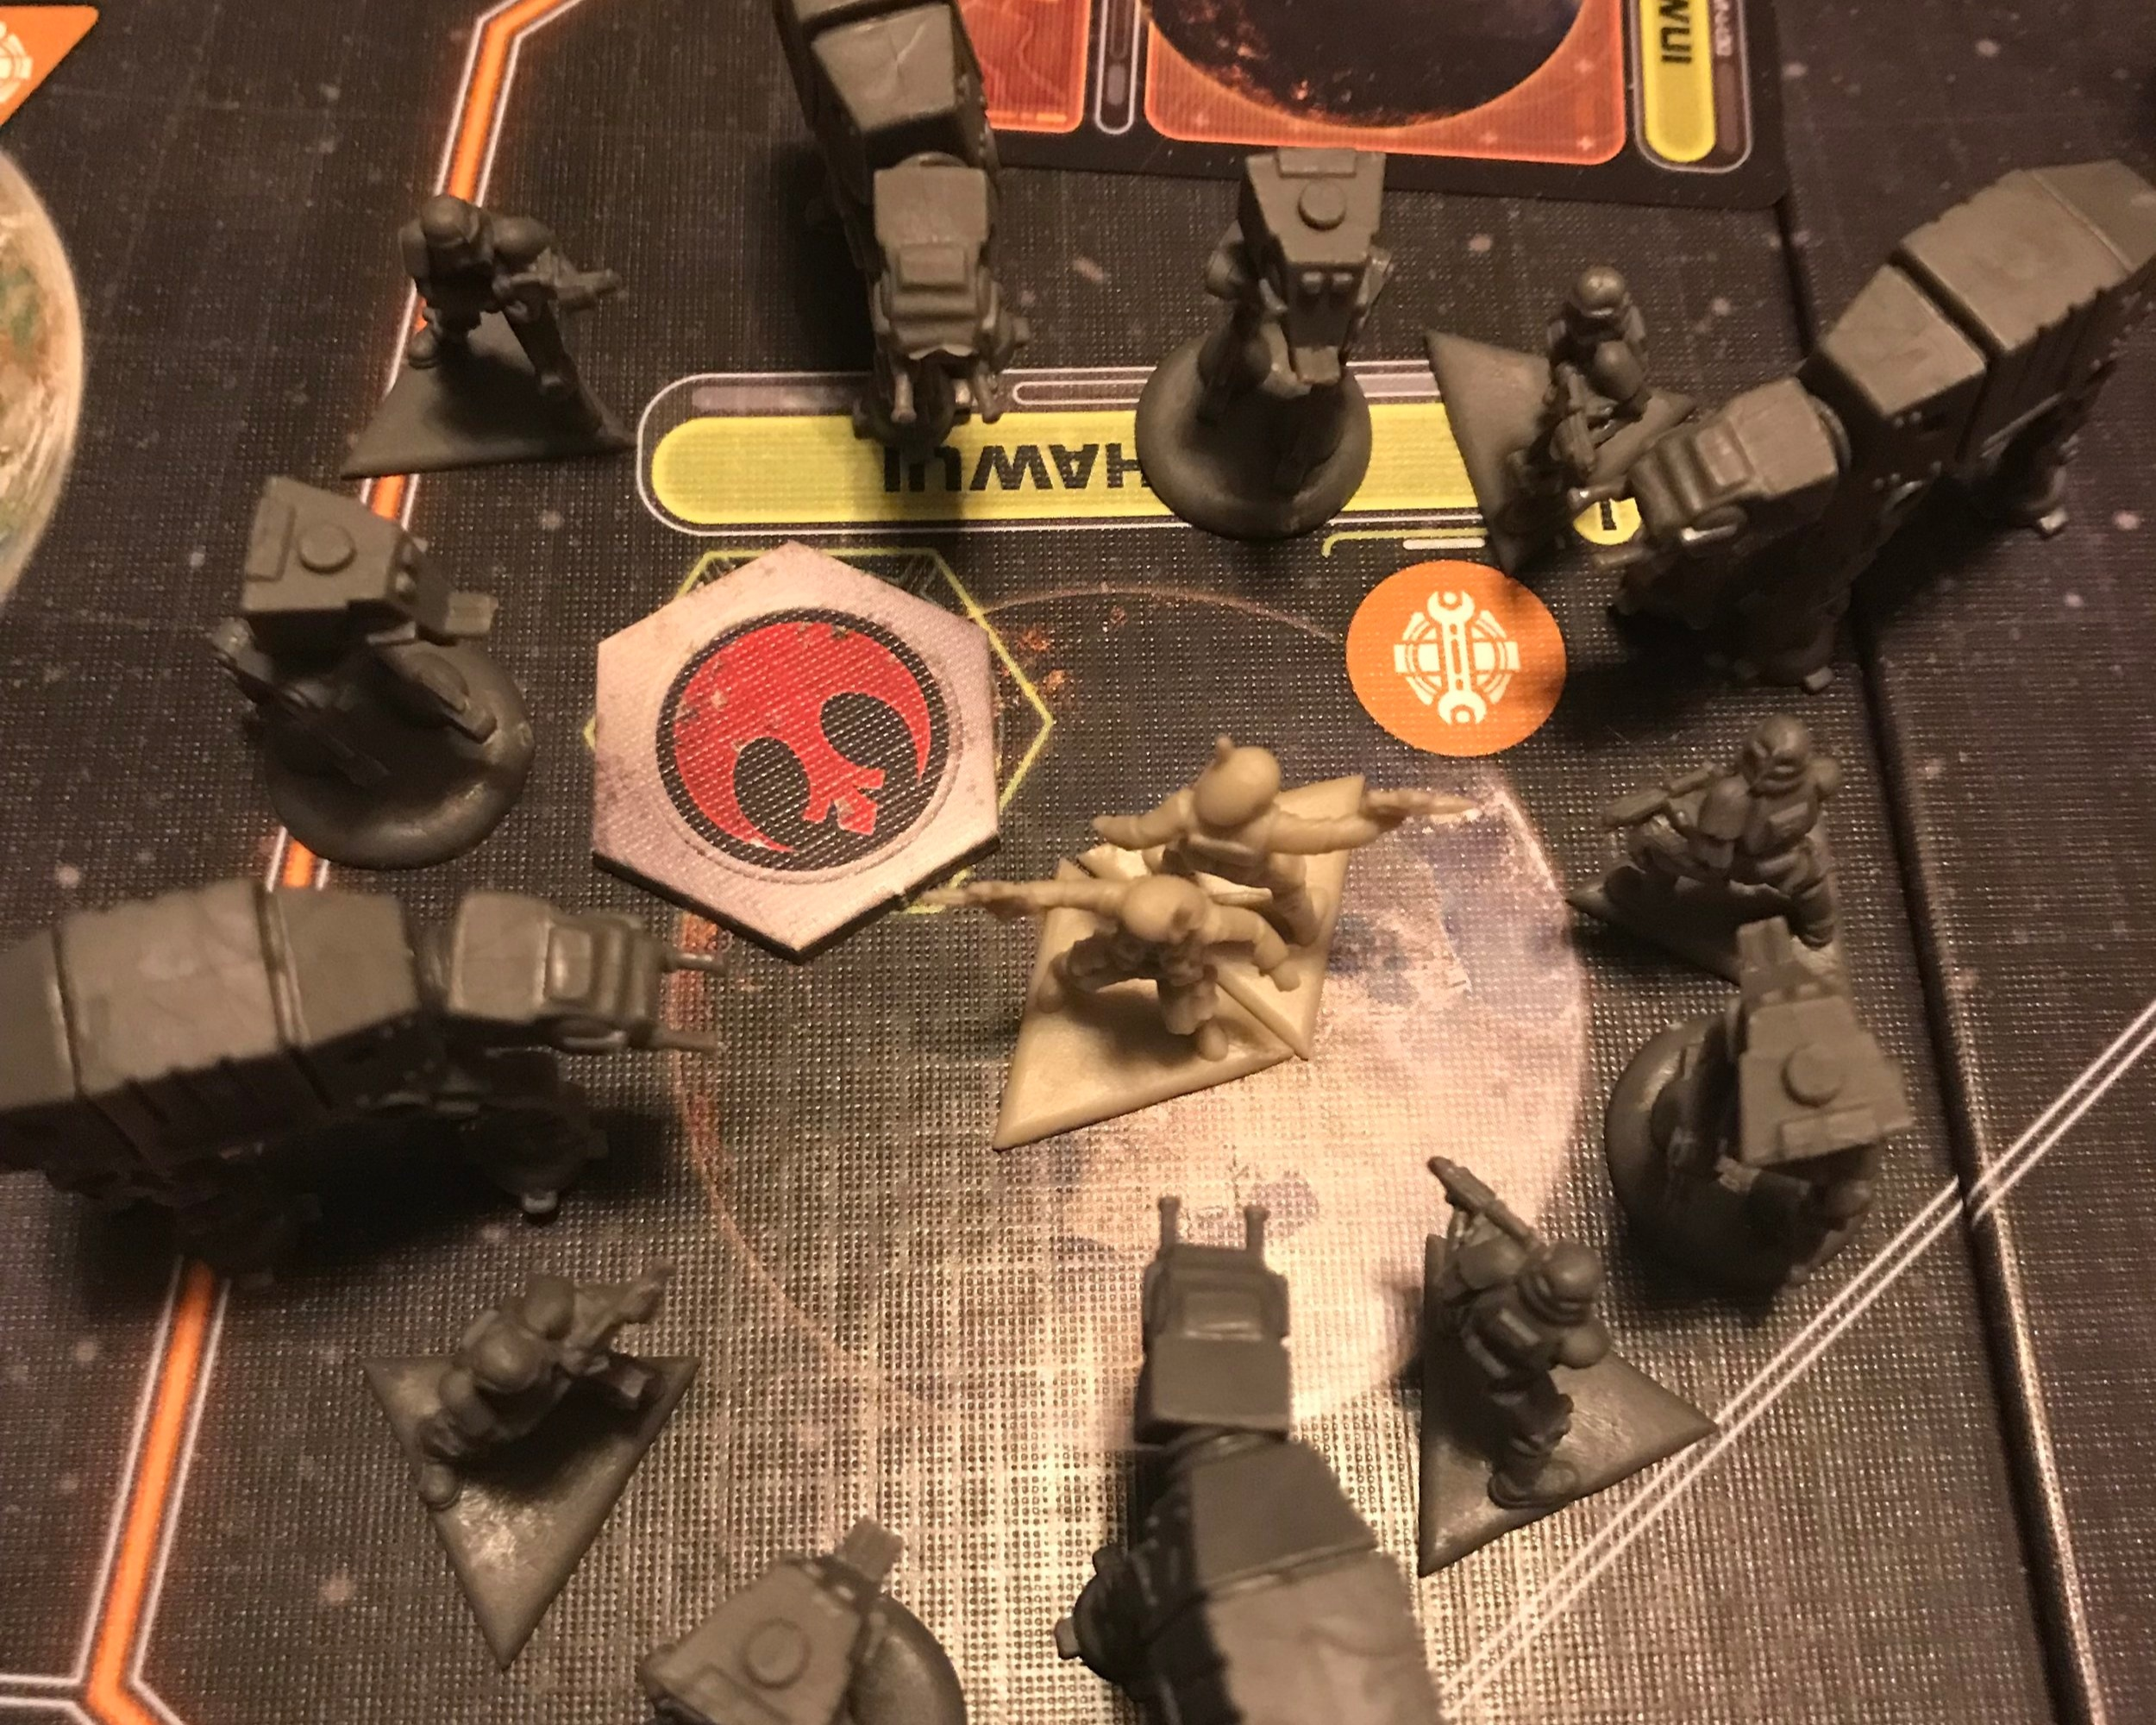 Star Wars Rebellion: the survival of the galaxy depends on you - In this galactic game of hide and seek you will either attempt to hide your rebel base and avoid the galactic empire or you will hunt and destroy the last surviving base of the rebel scum.